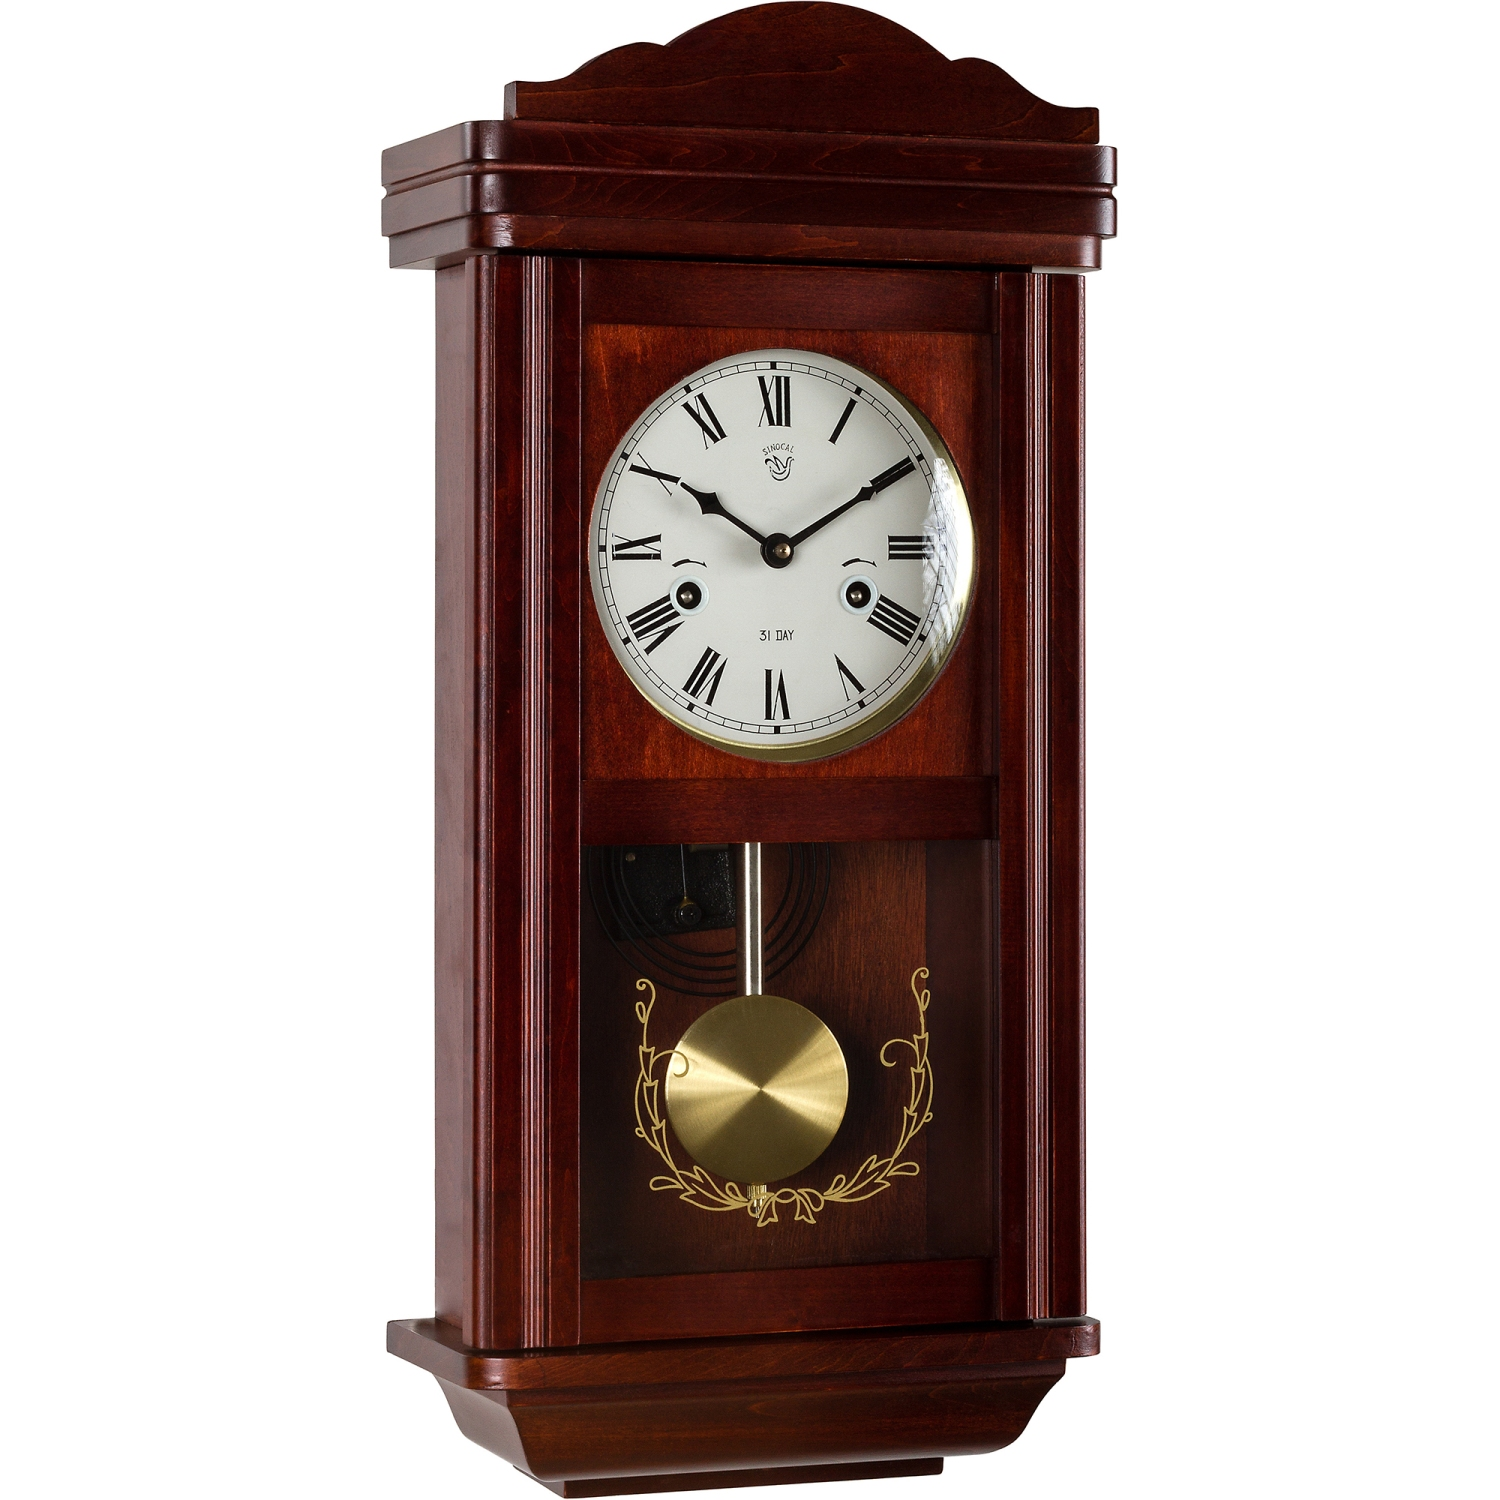 wanduhr pendeluhr uhr regulator im mahagoni stil pendel 4048821004261 ebay. Black Bedroom Furniture Sets. Home Design Ideas